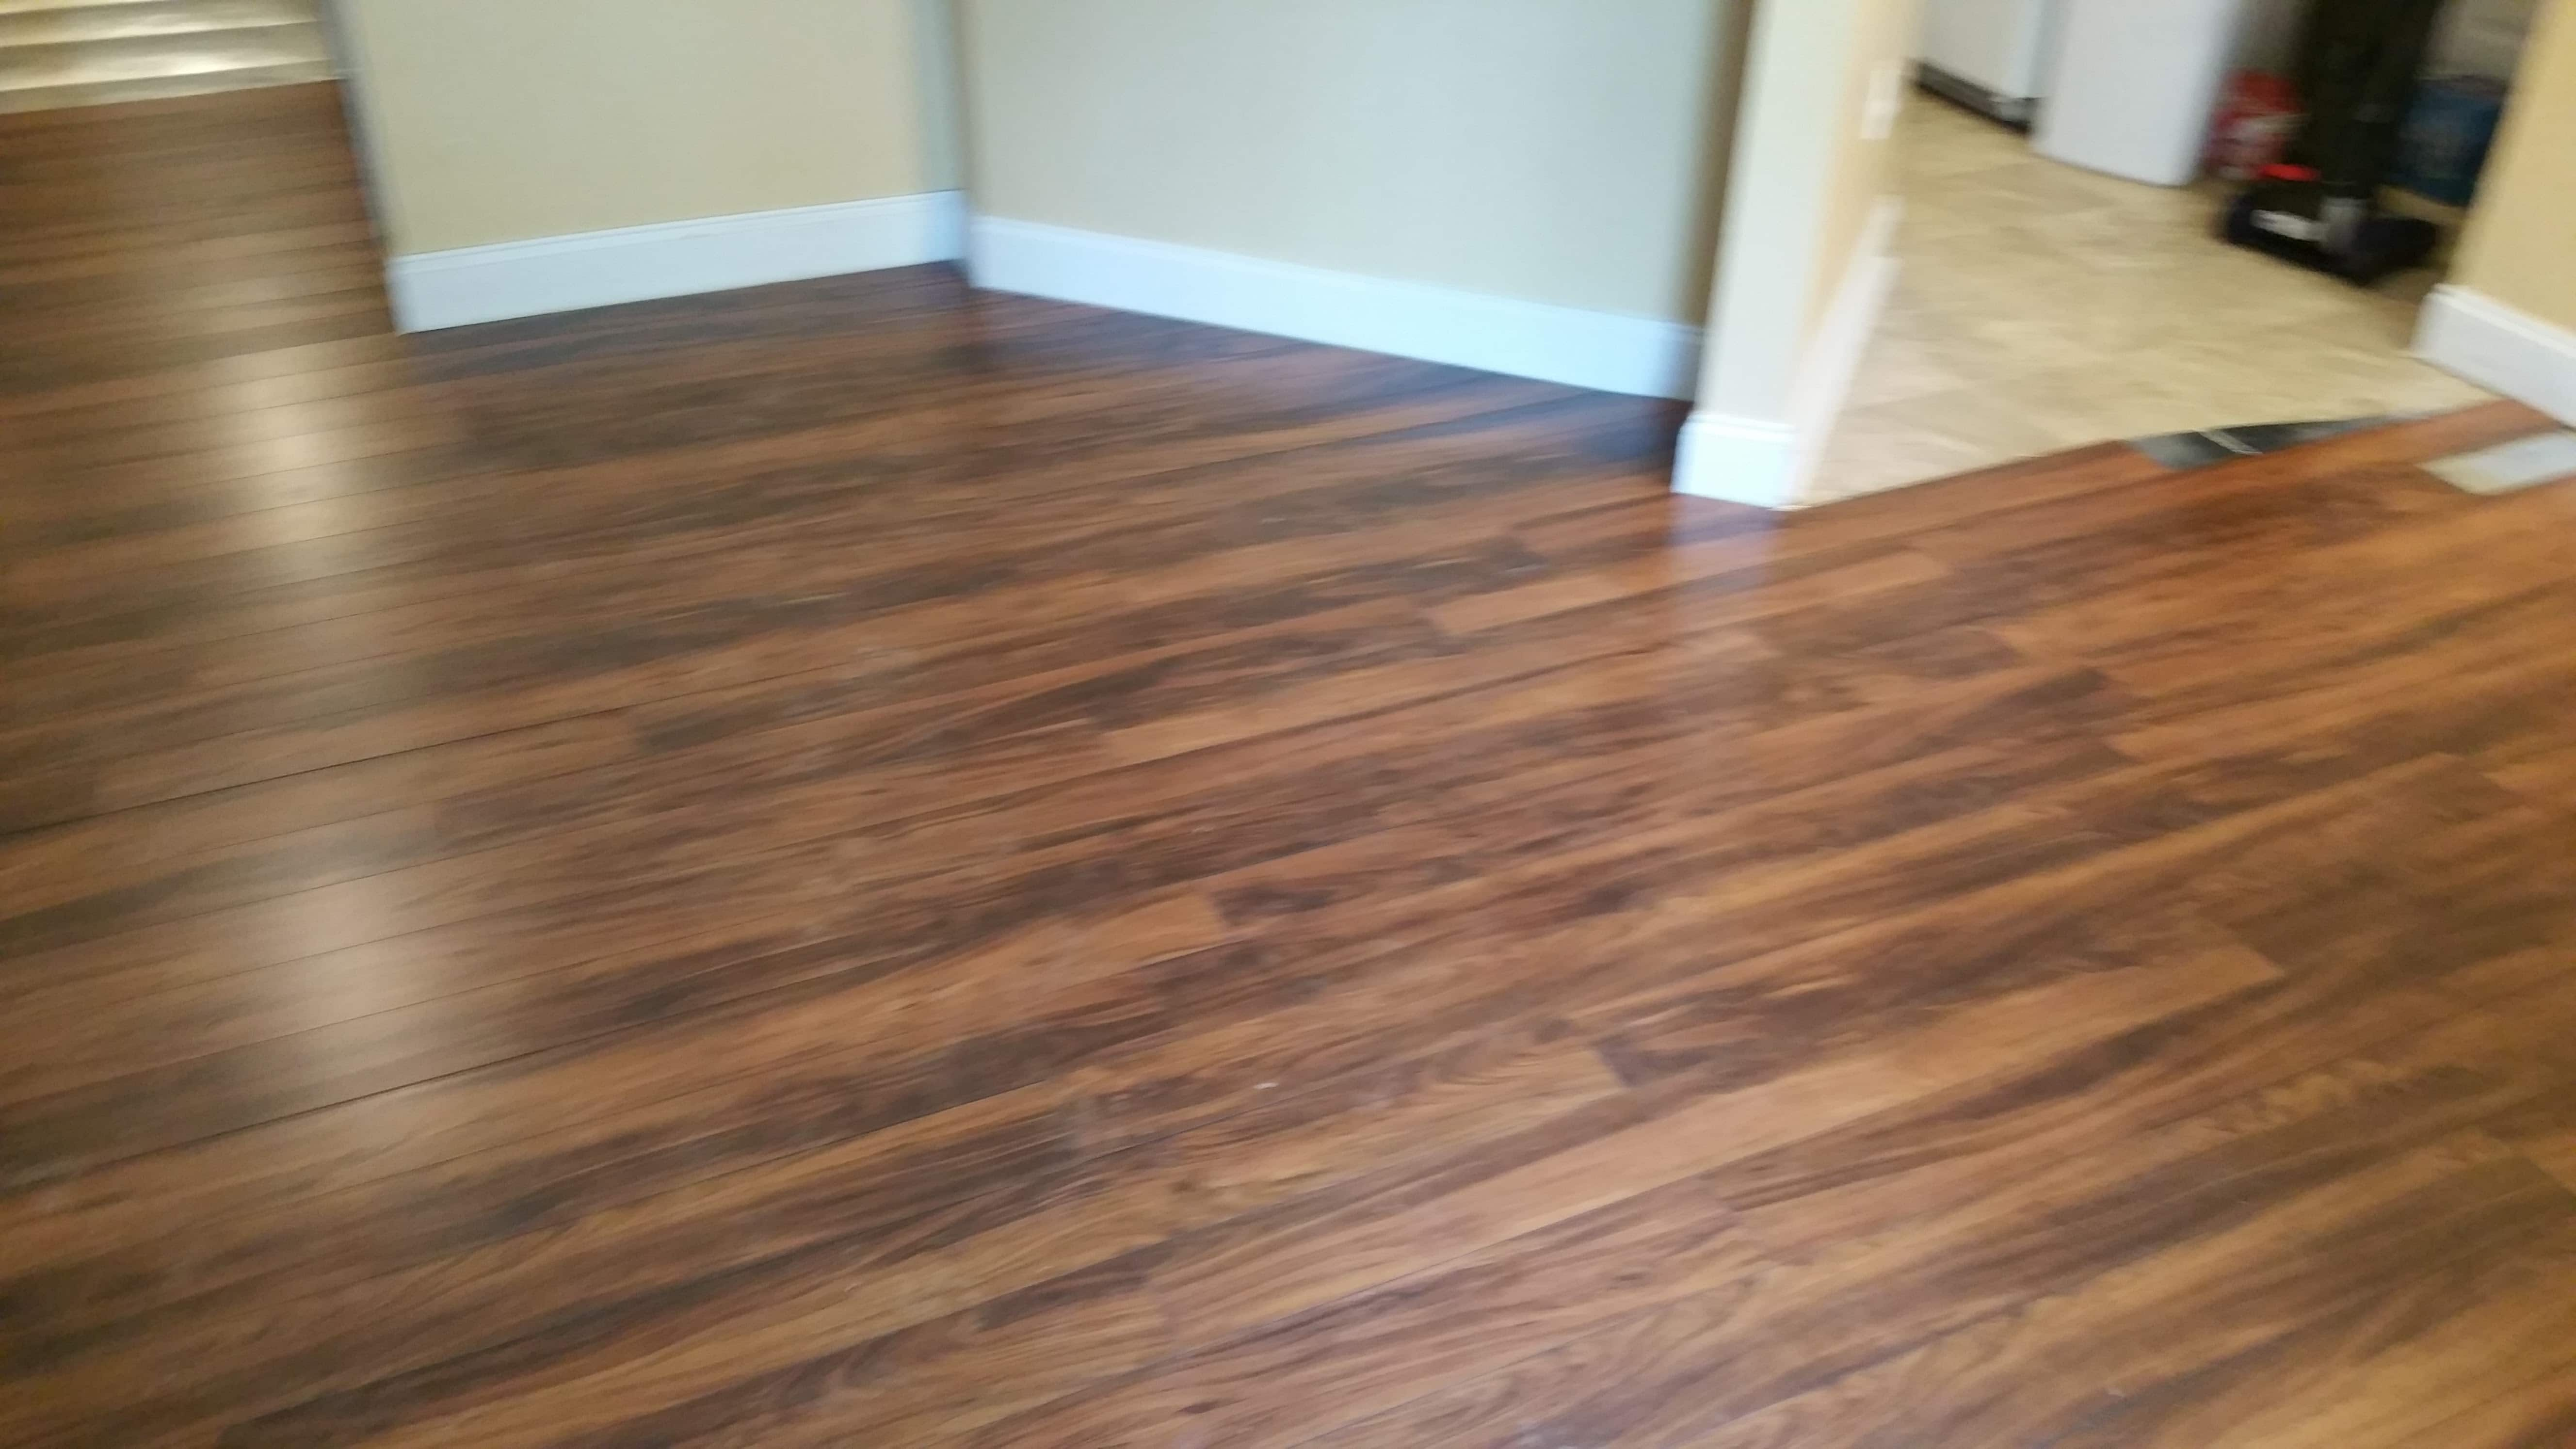 Hardwood flooring refinishing repair installation for Floor sanding courses